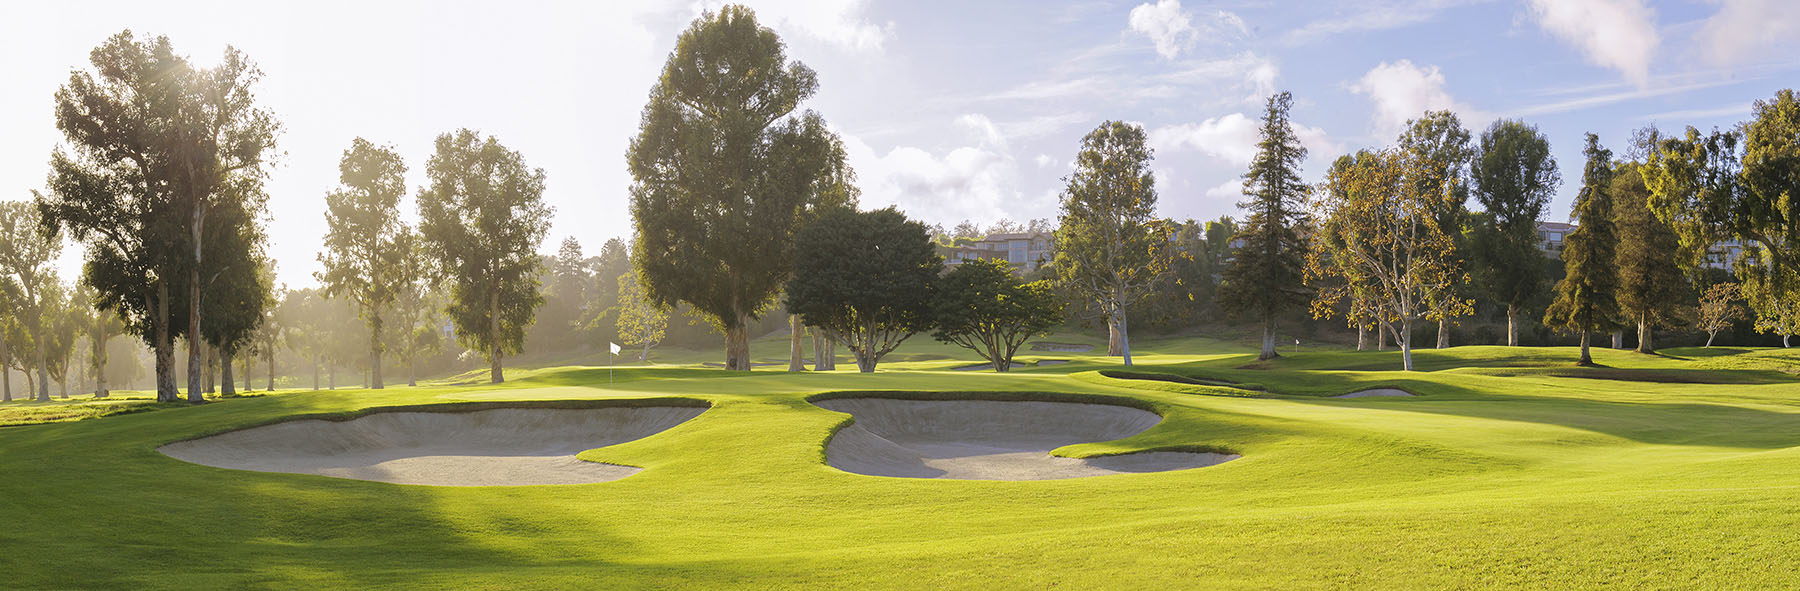 Golf Course Image - Riviera Country Club No. 14